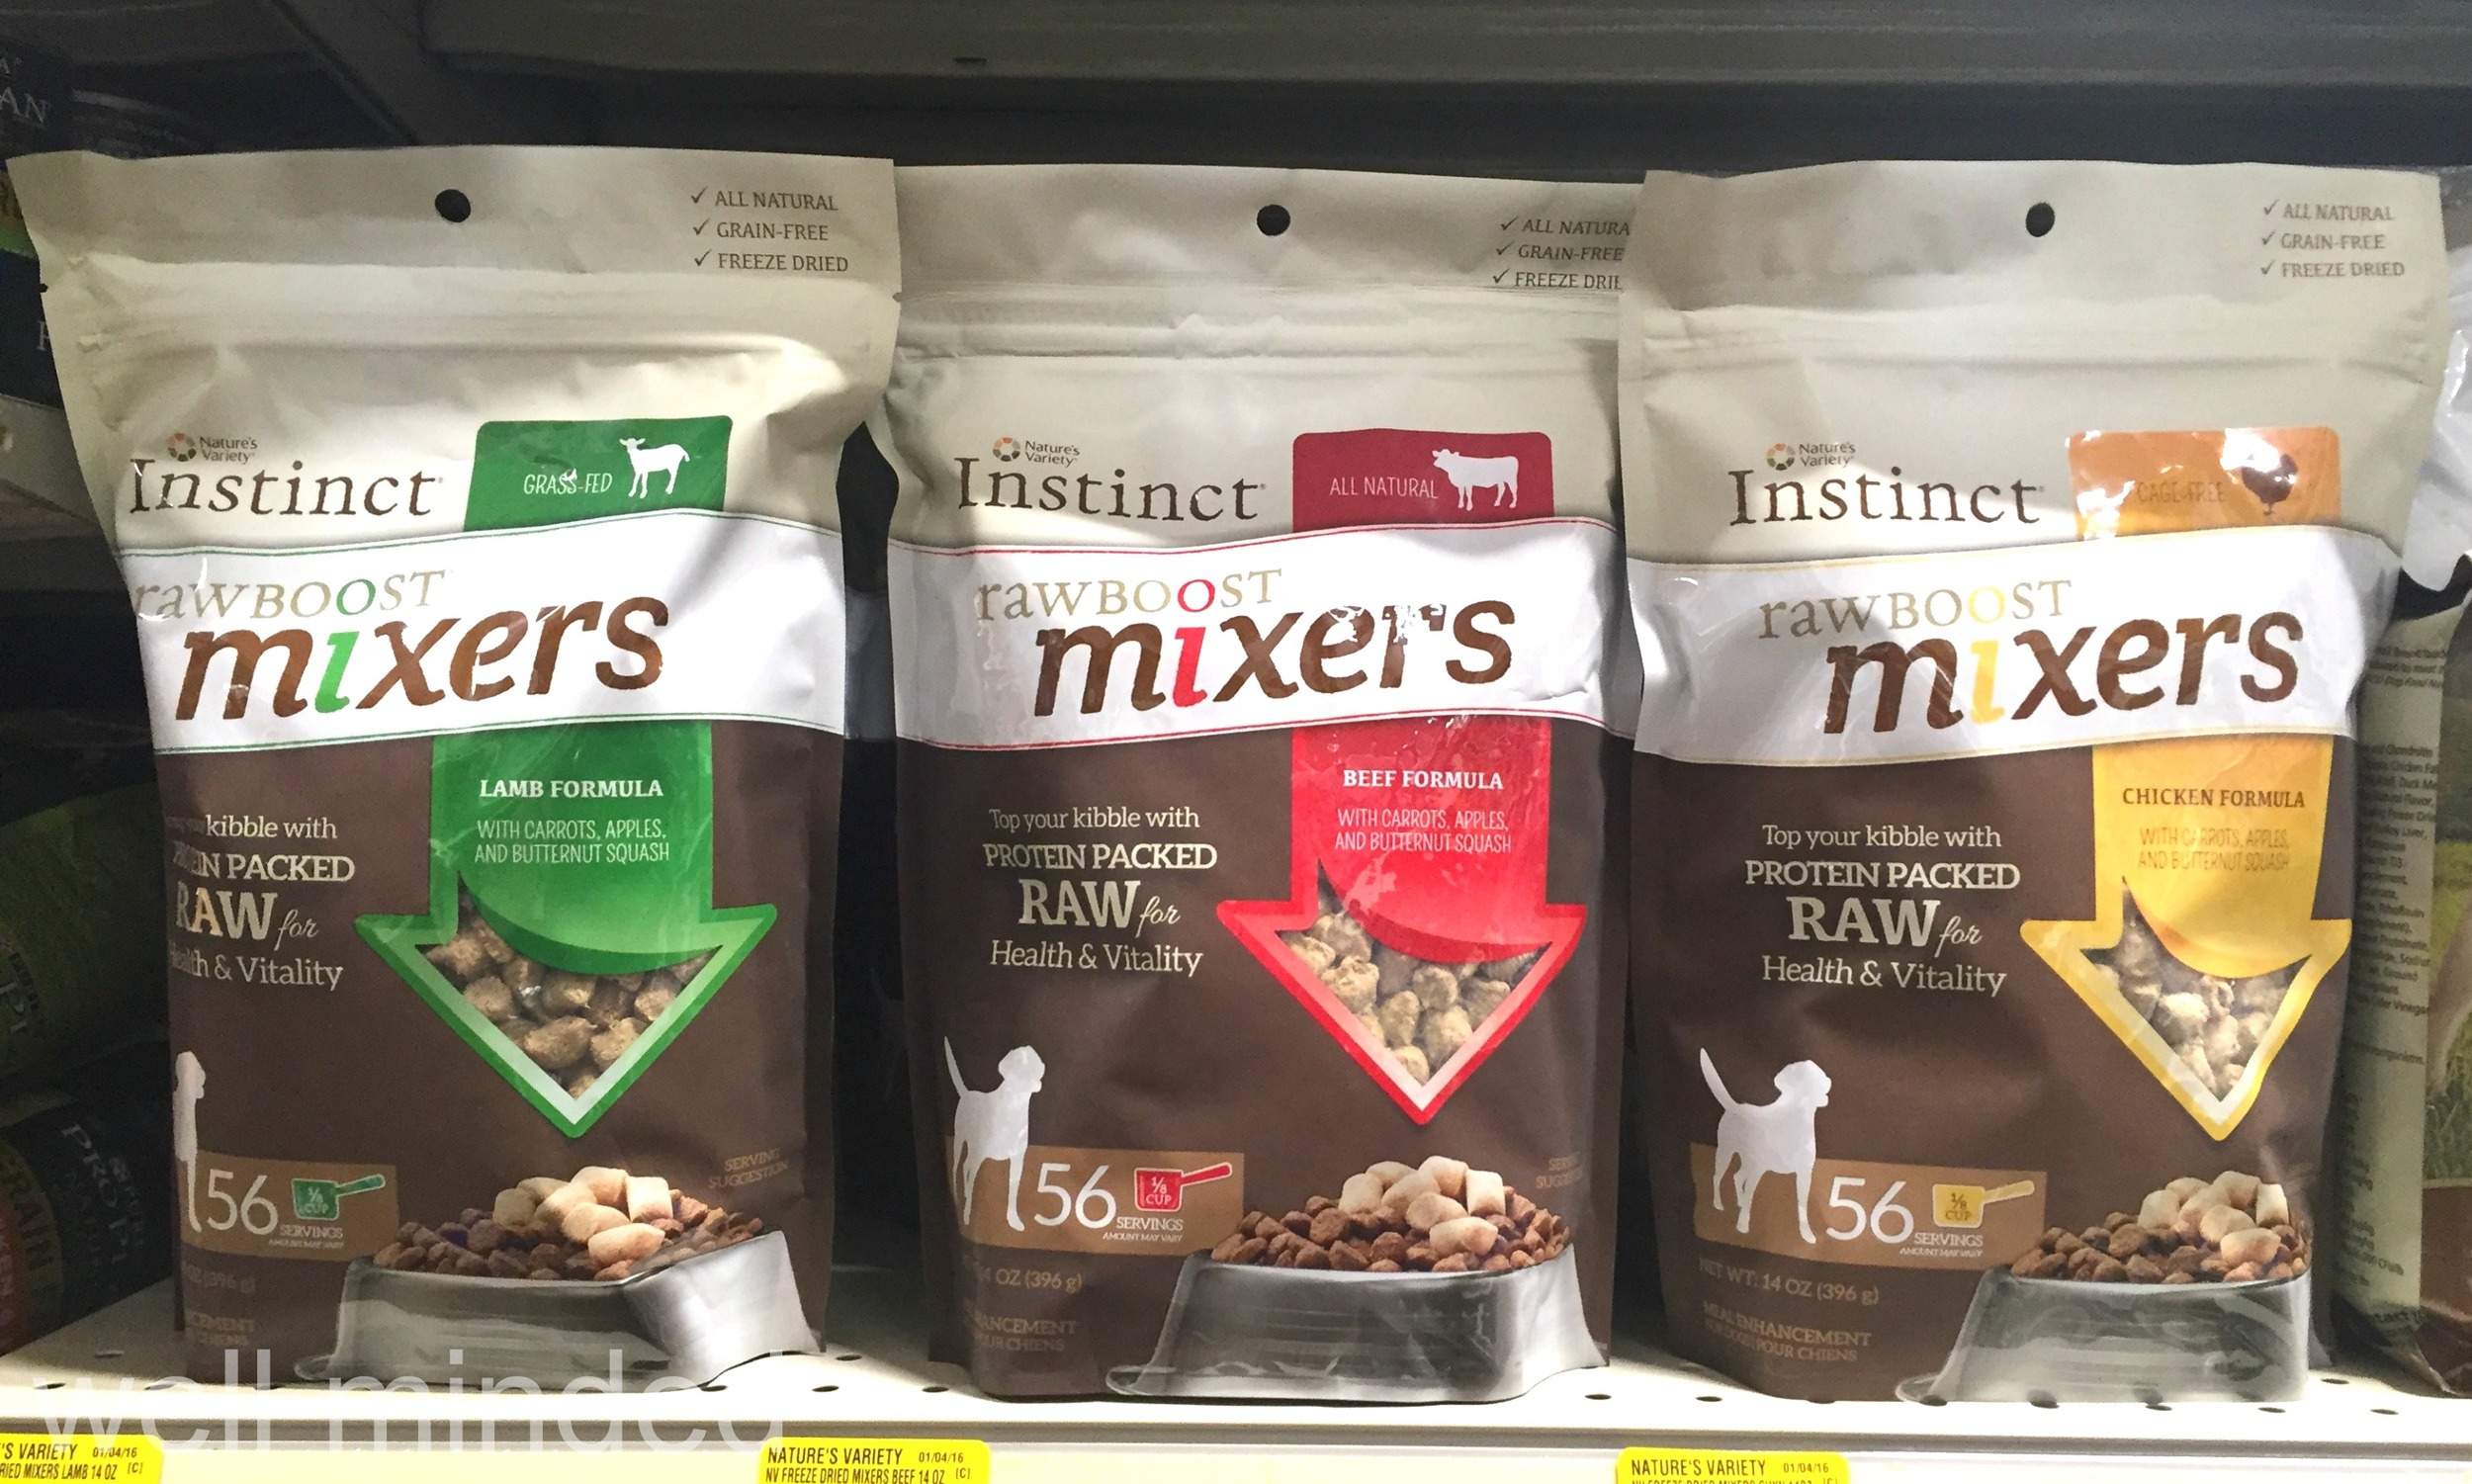 Decisions, decisions...which bag of Instinct Raw Boost Mixers should we choose?